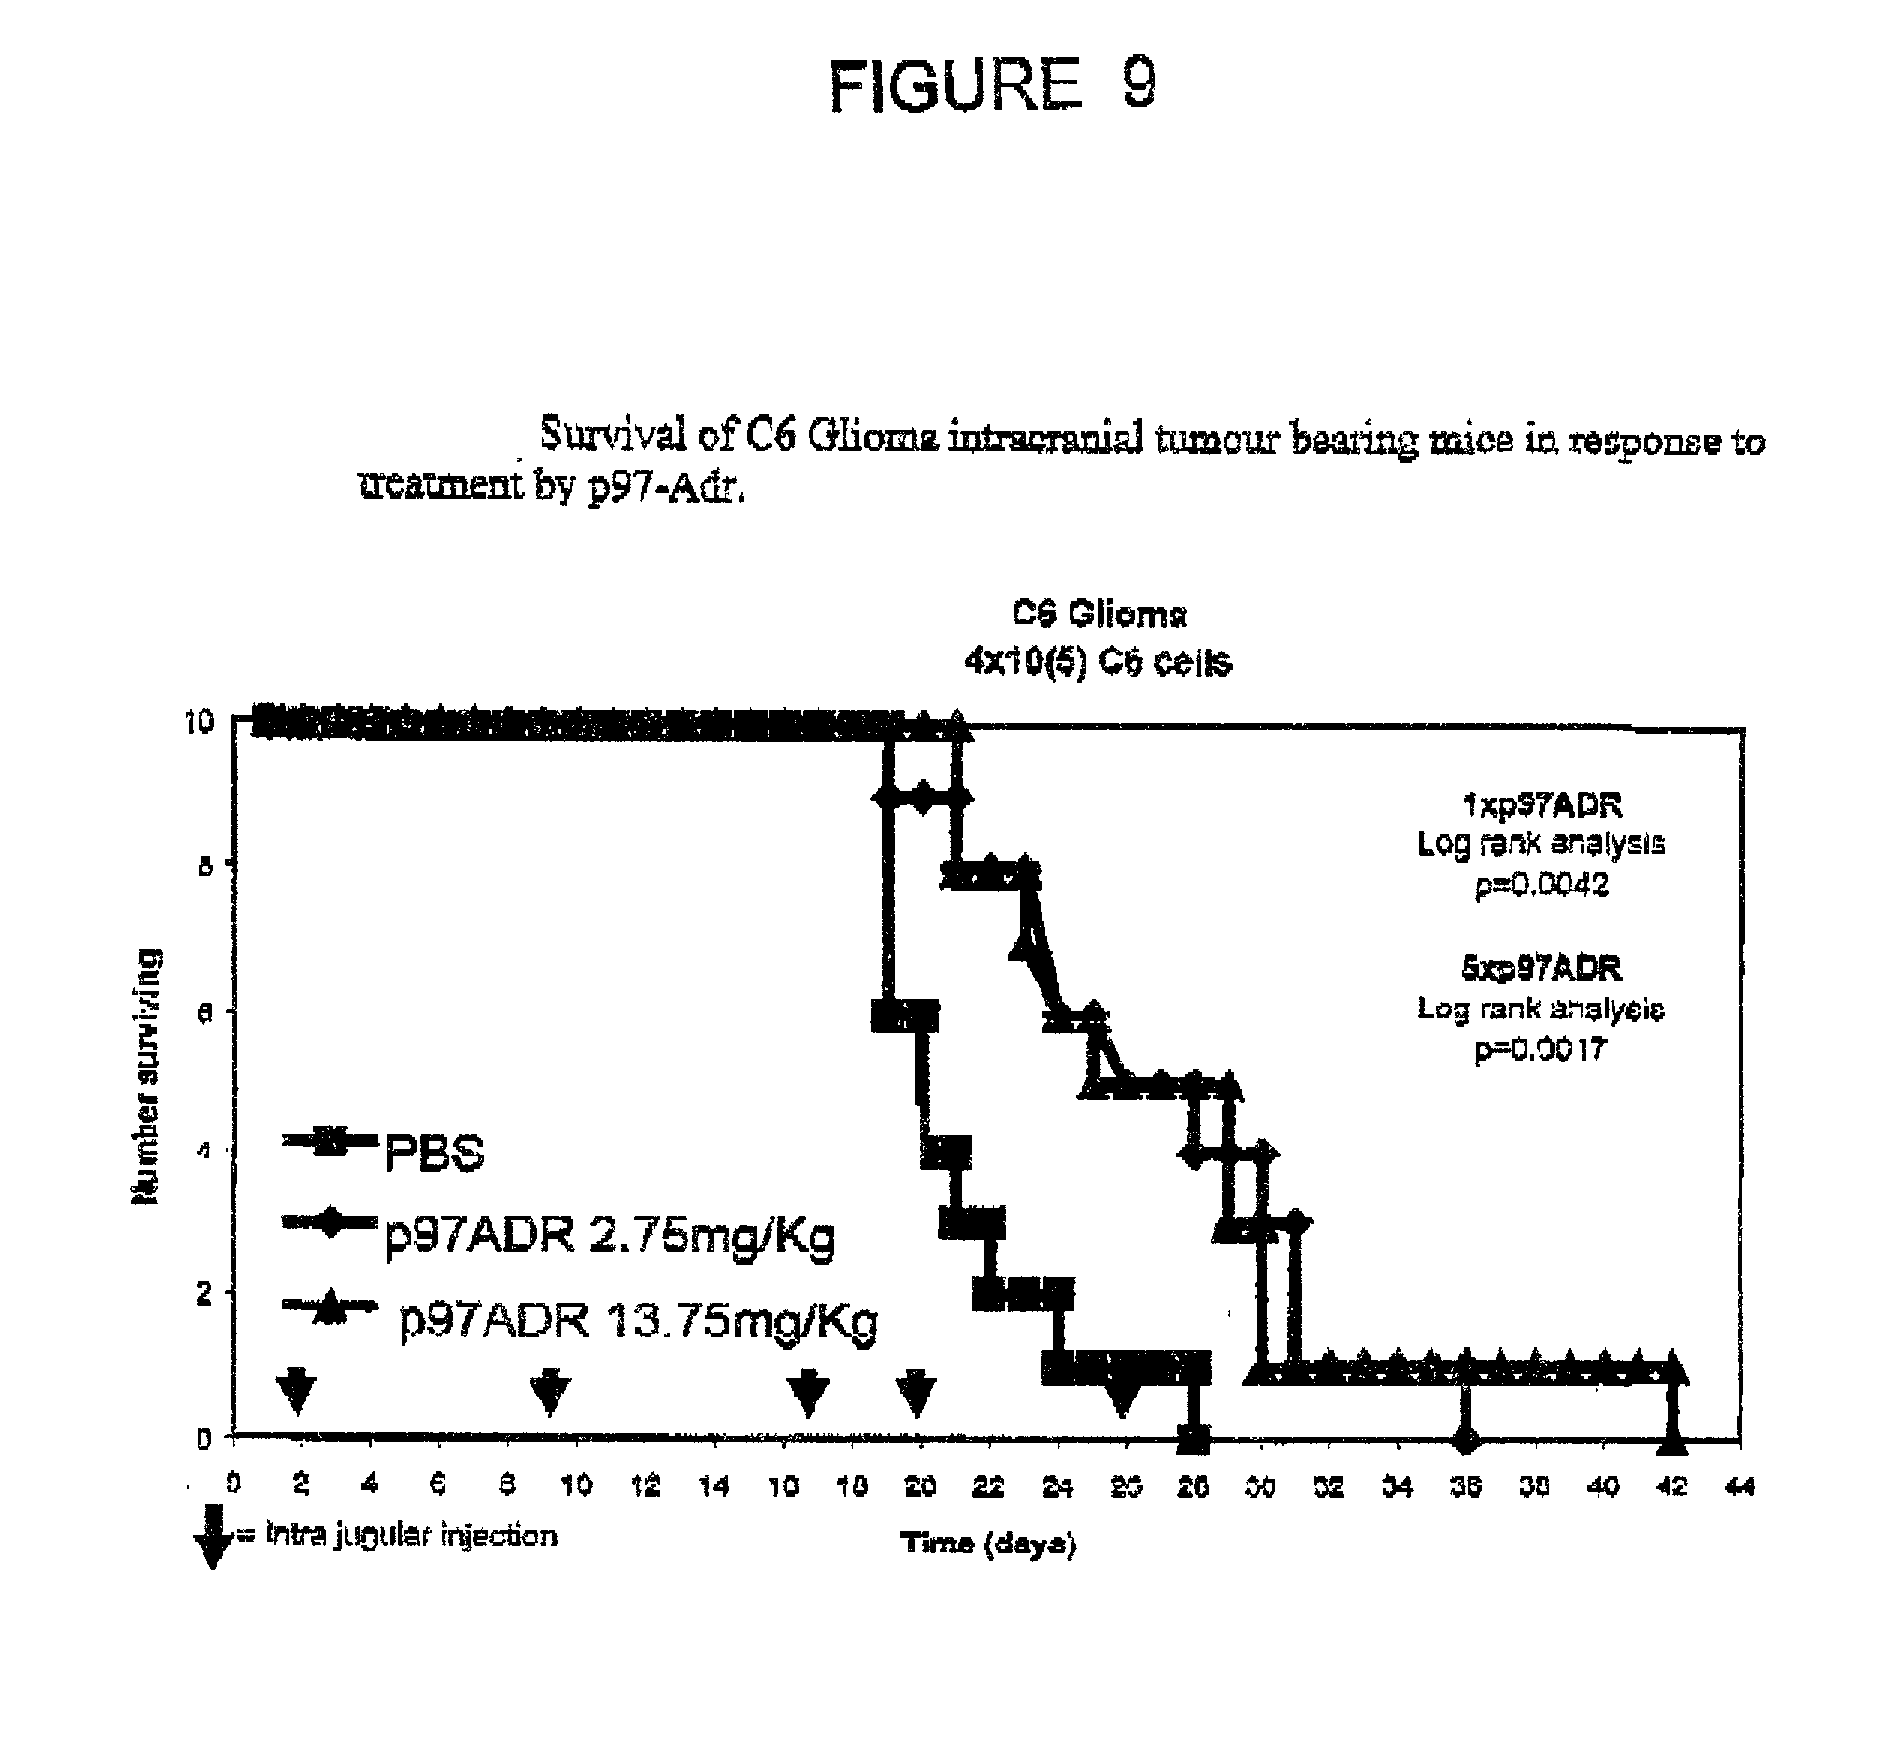 US20020119095A1 - Chemotherapeutic agents conjugated to p97